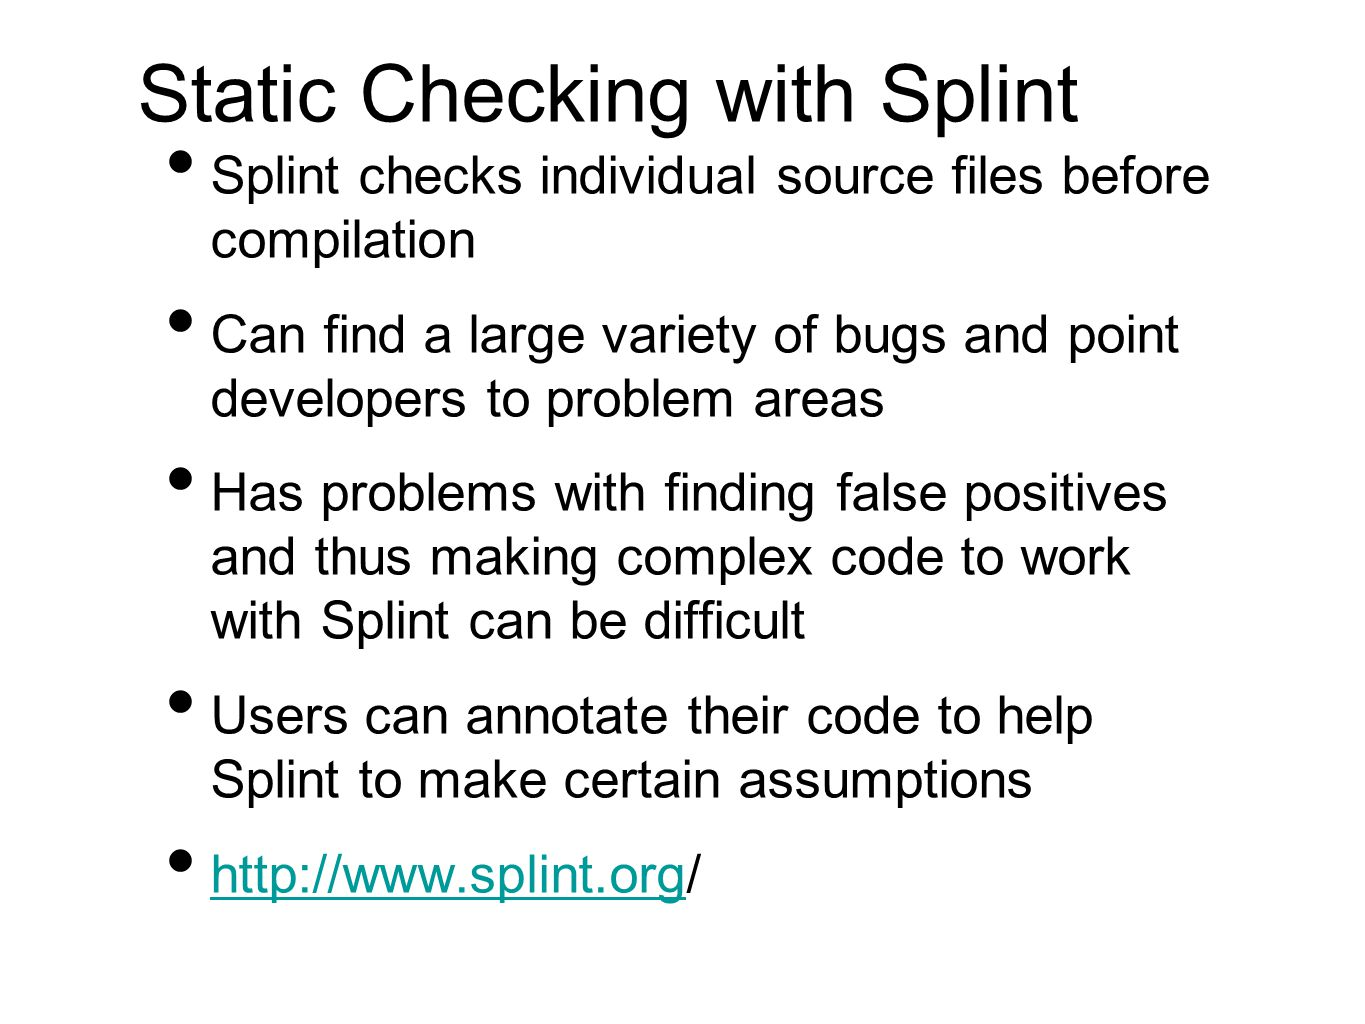 Static Checking with Splint Splint checks individual source files before compilation Can find a large variety of bugs and point developers to problem